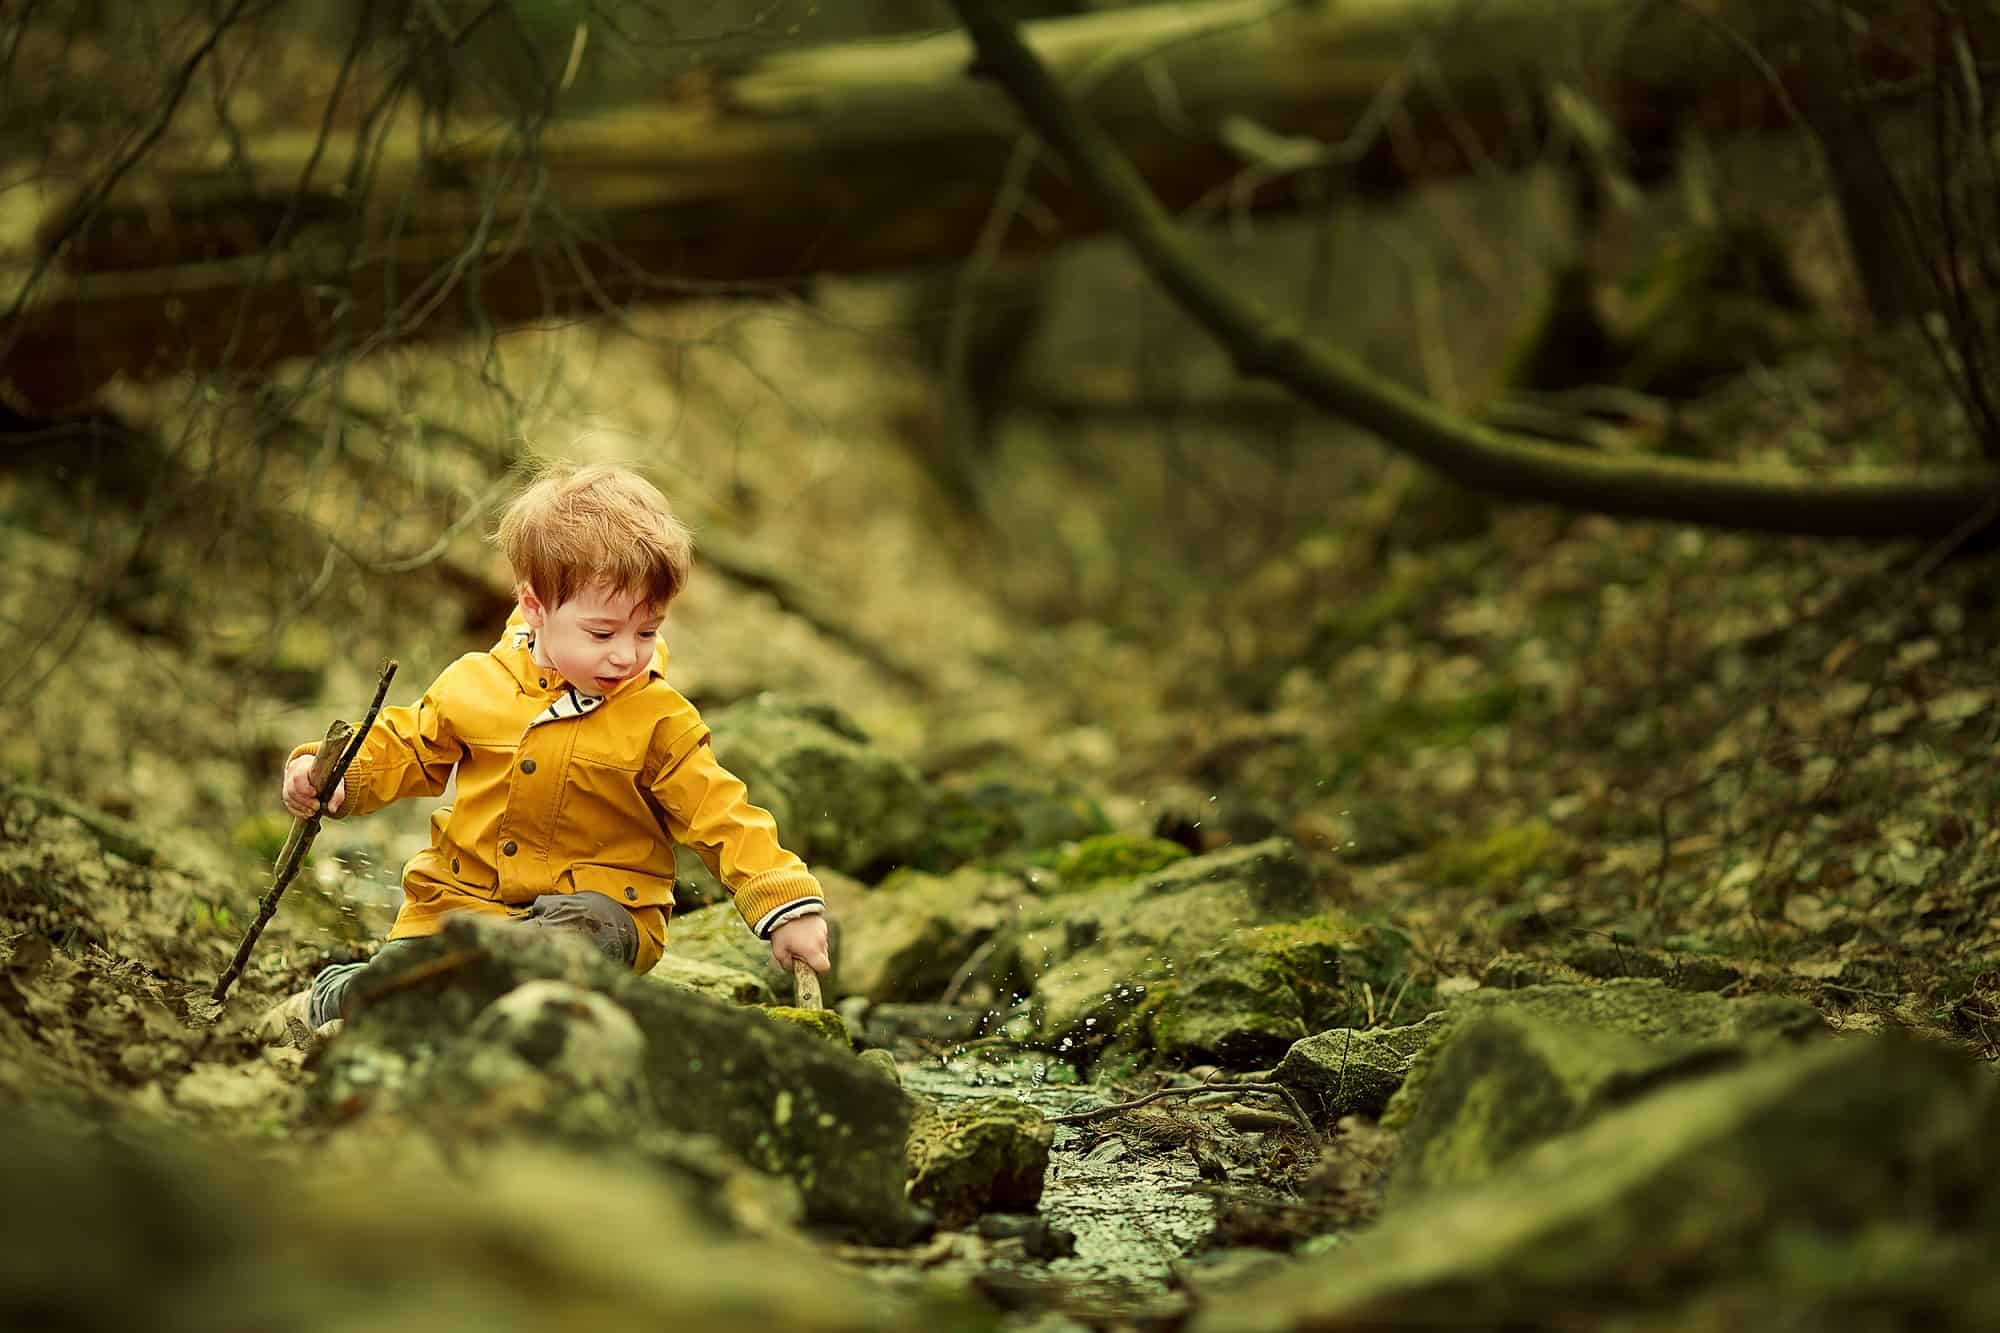 Why We Travel: Curious Kids in the Making